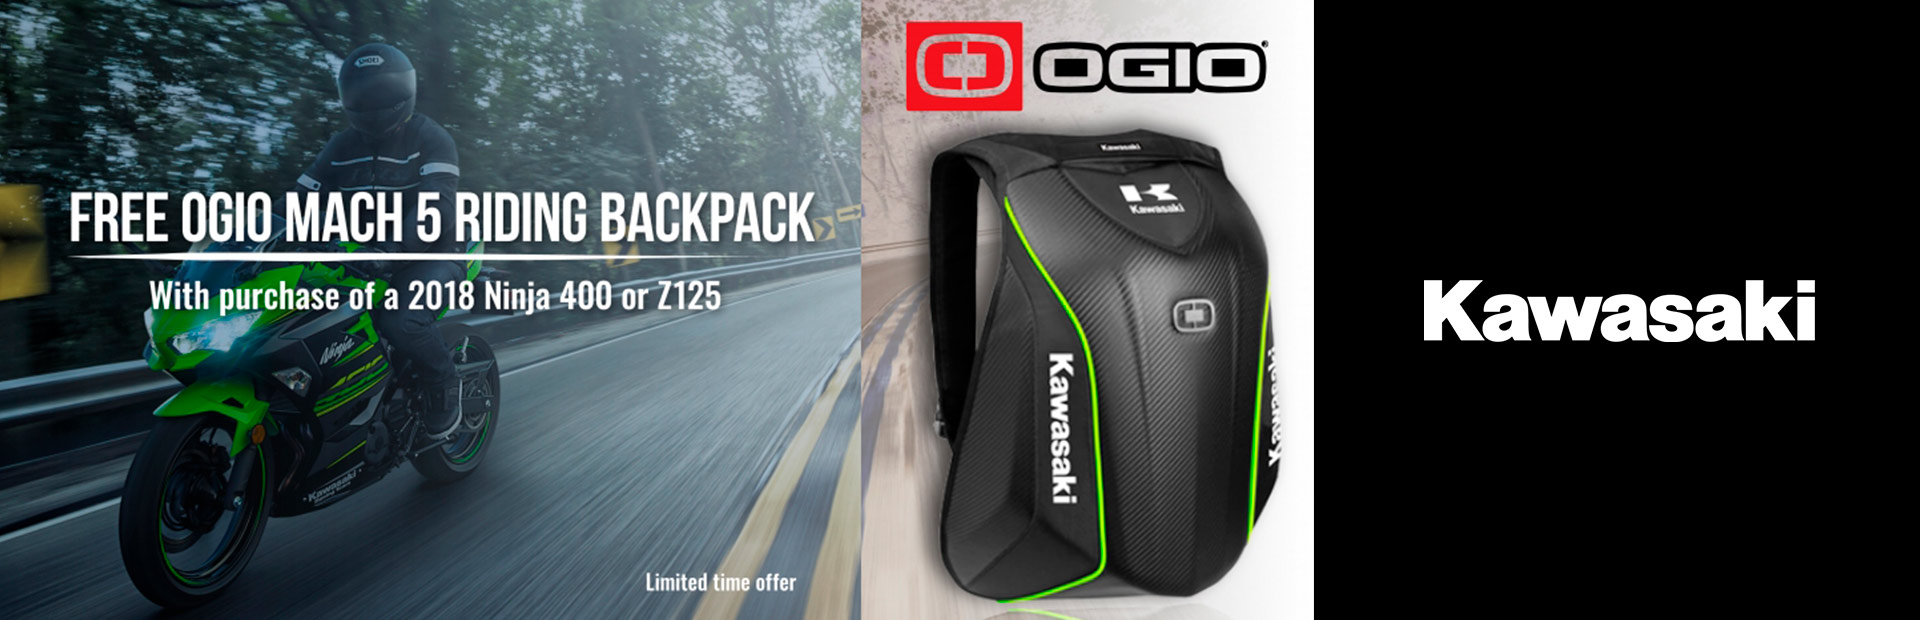 Kawasaki: Free OGIO Mach 5 Riding Backpack